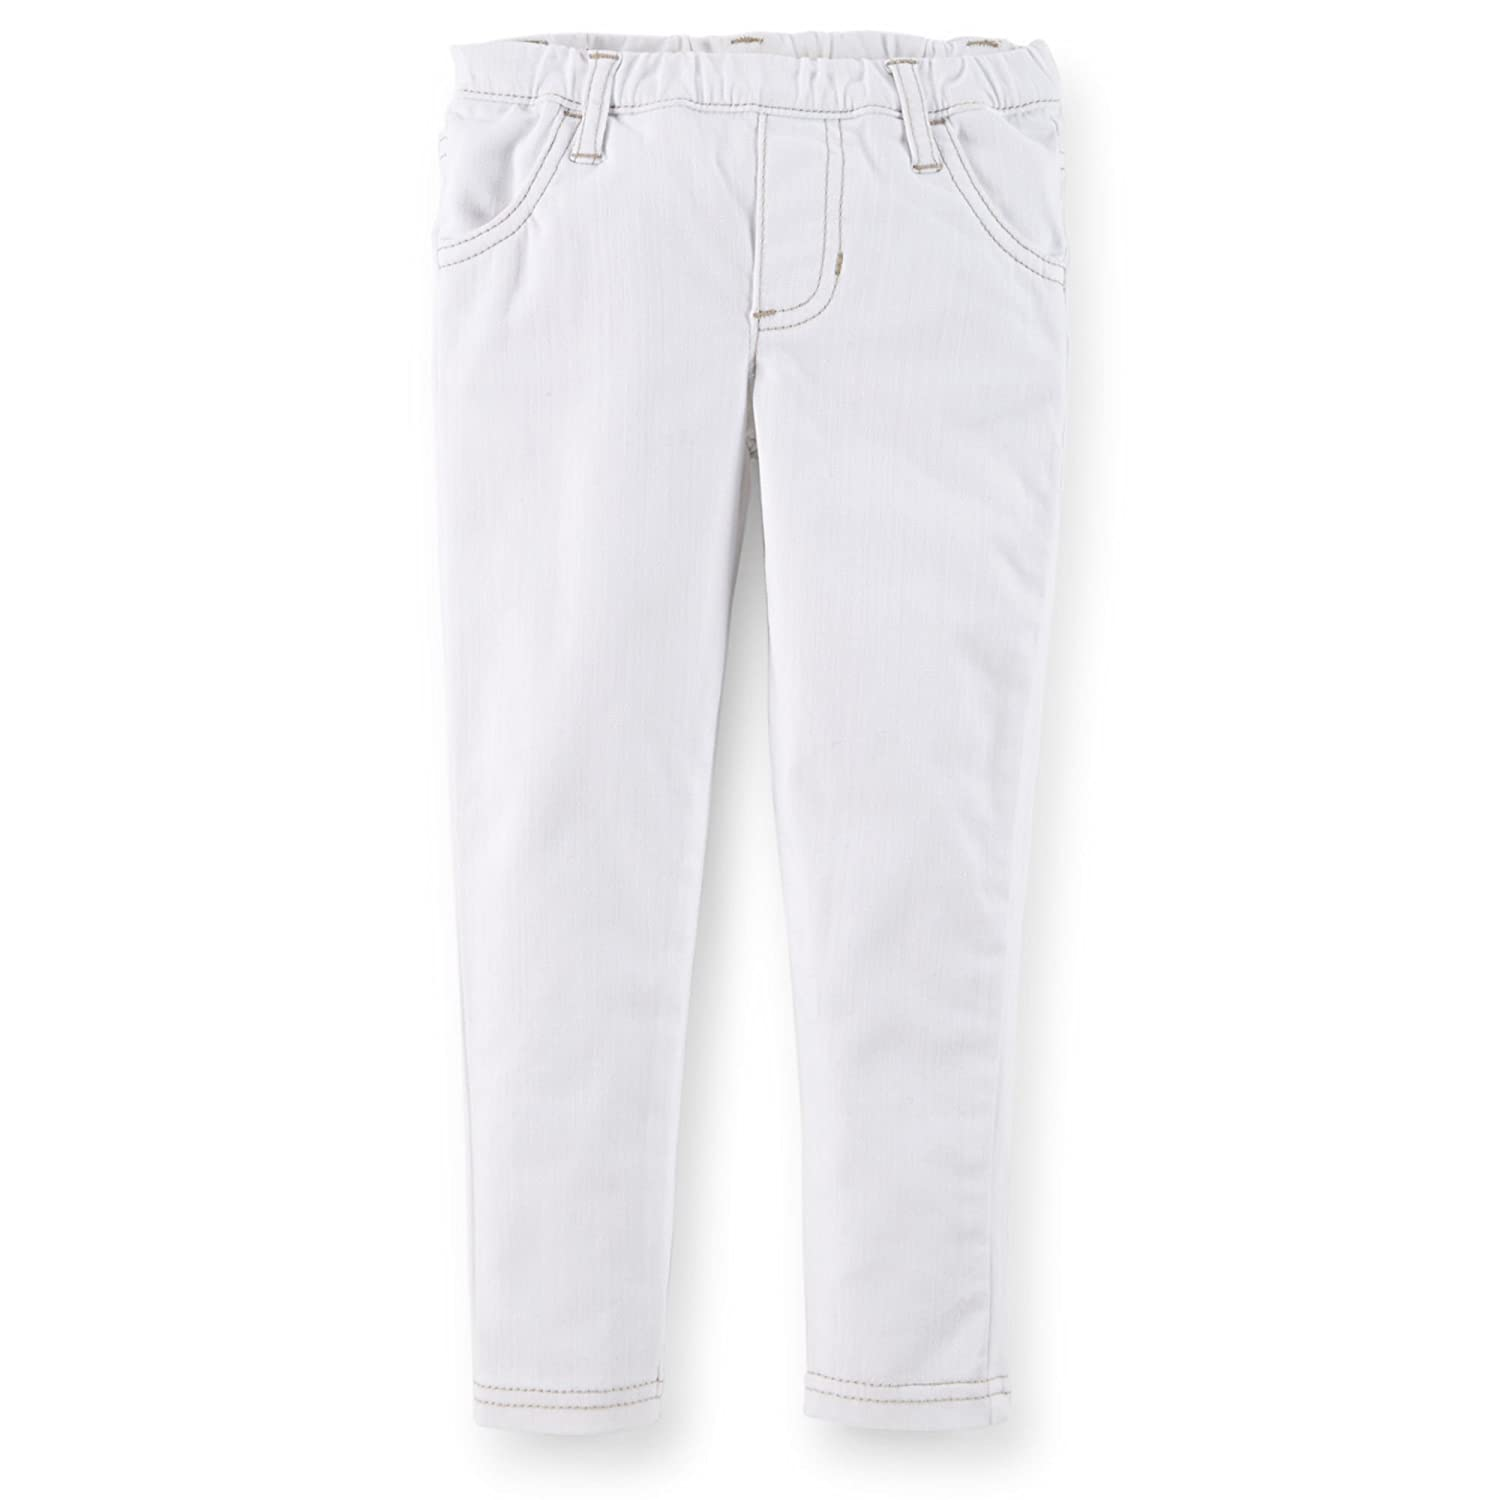 5 Size 5 White Carters Little Girls Stretch Twill Jeggings